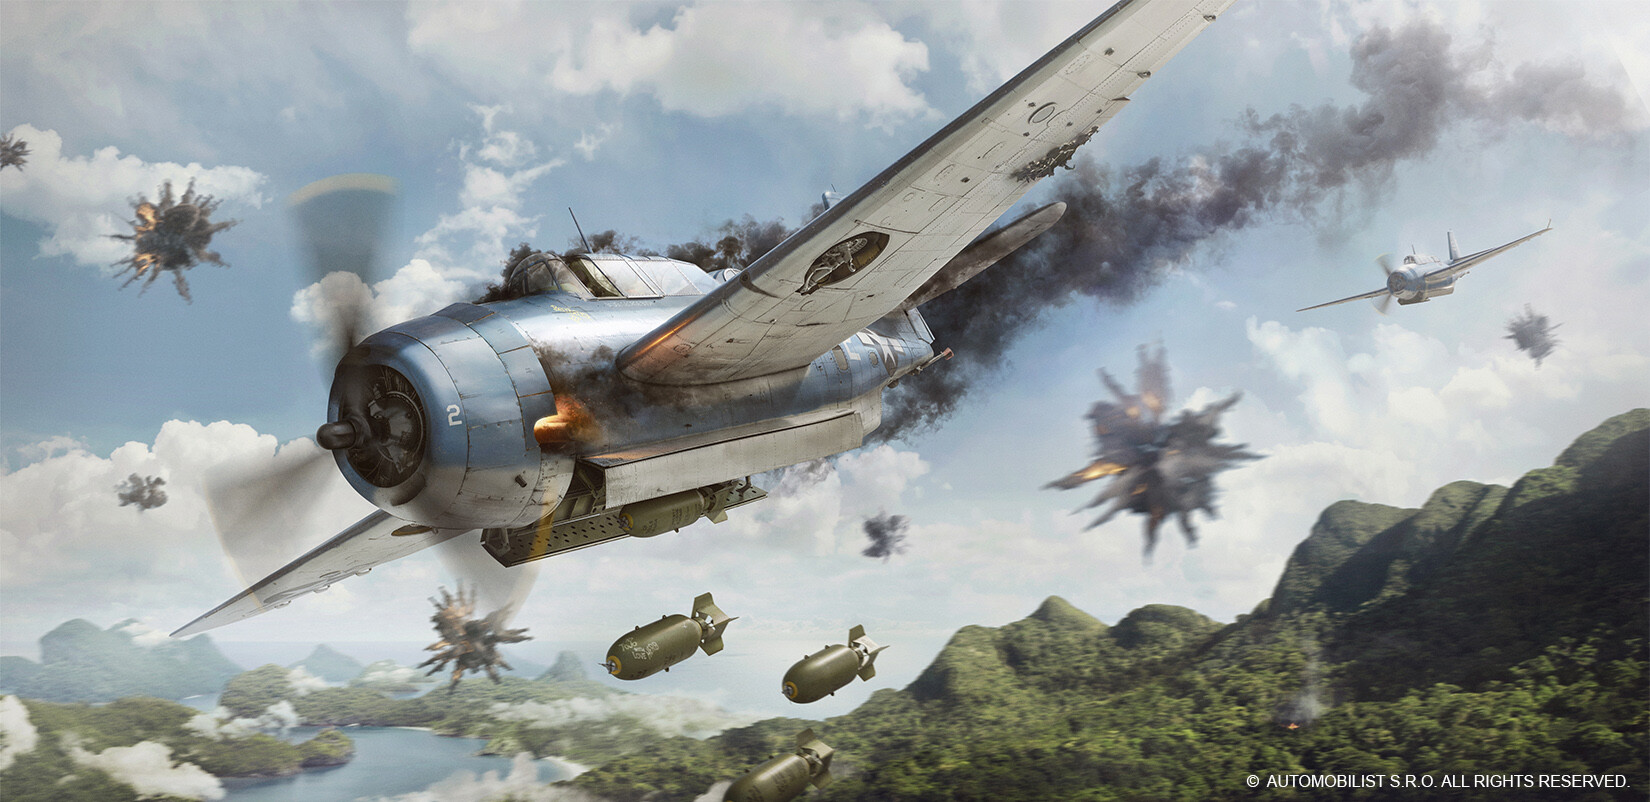 Battle of Philippine Sea Artwork - modelling of wings, lower fuselage and bombs